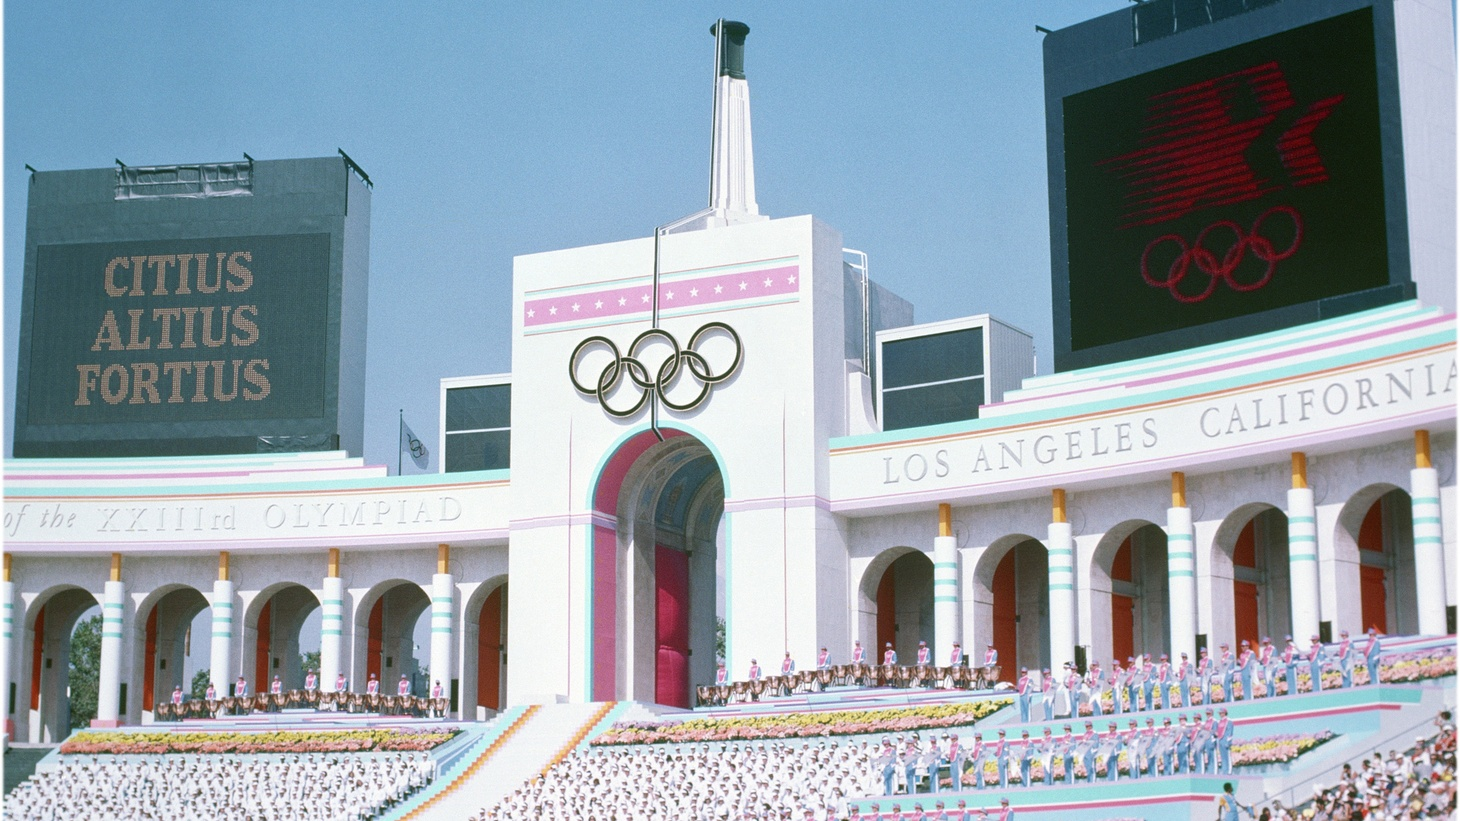 Los Angeles is bidding to host the 2024 Summer Olympics. What are the city's chances? Also, the last time our city hosted the Olympics was in 1984. How did the city benefit from it then, and is it likely we'd see the same payoffs this time around?